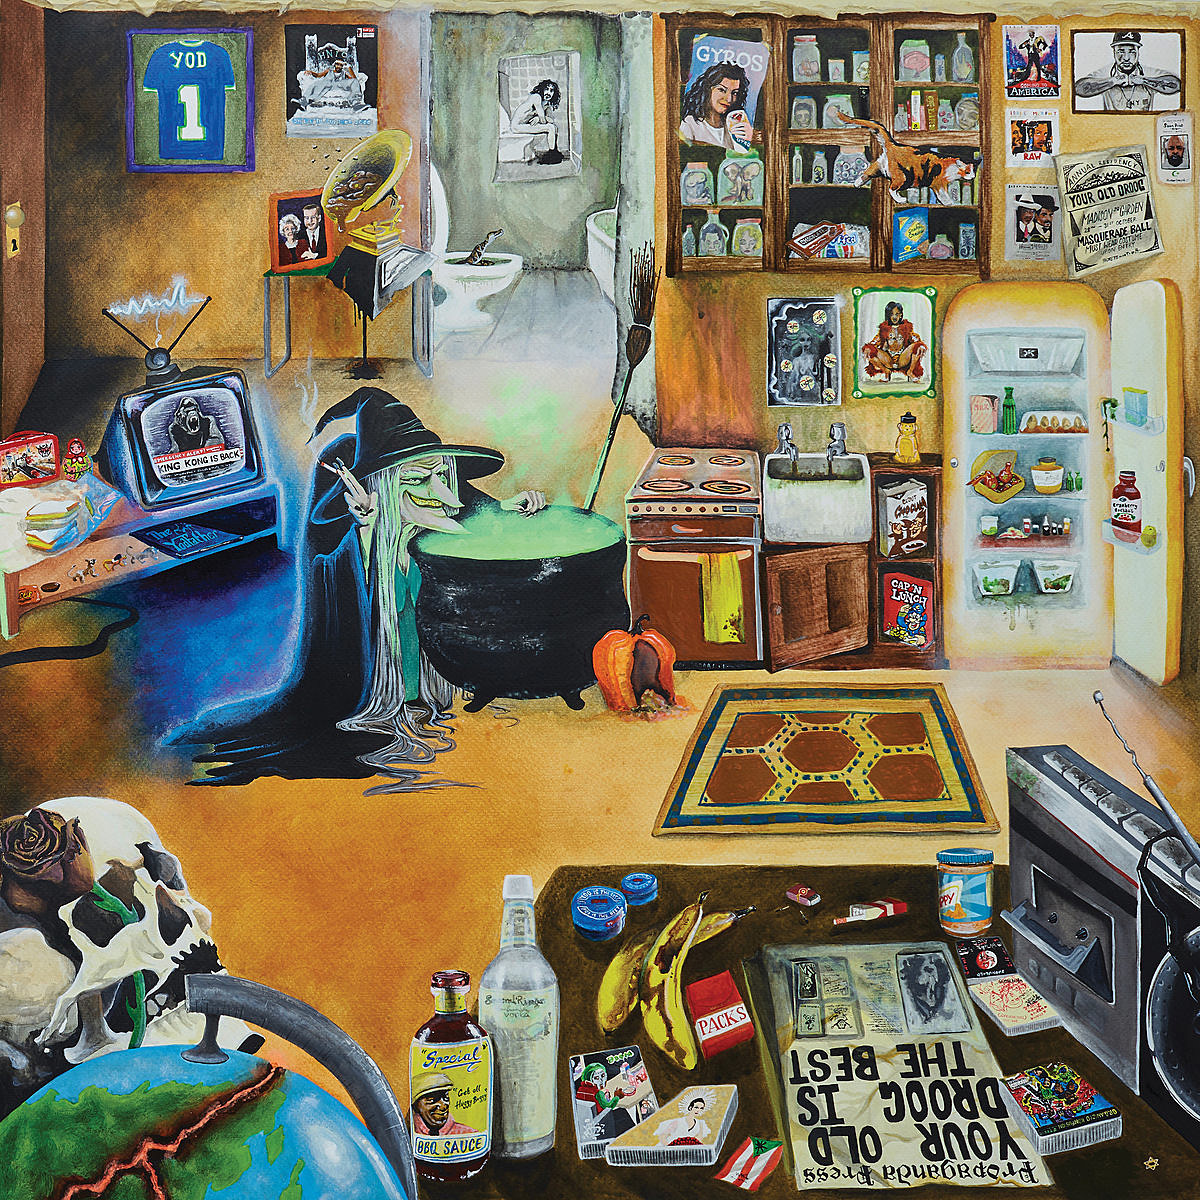 stream Your Old Droog's surprise LP 'It Wasn't Even Close' (ft. Wiki, Lil Ugly Mane, DOOM, more)